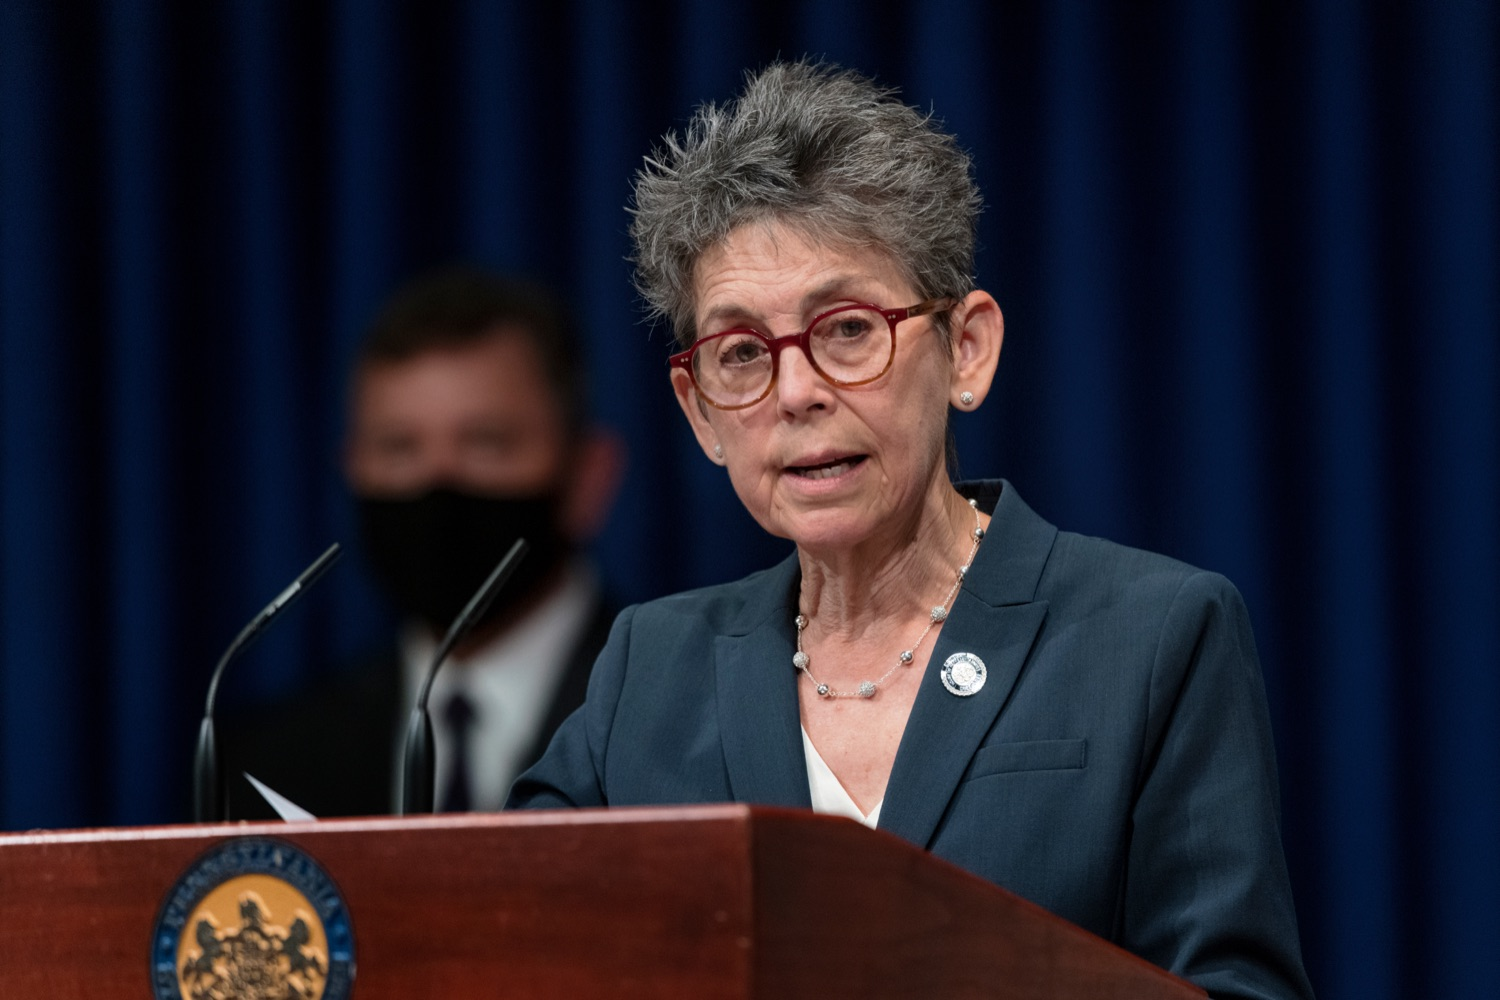 """<a href=""""https://filesource.wostreaming.net/commonwealthofpa/photo/19003_DCED_InnovationReport_NK_004.jpg"""" target=""""_blank"""">⇣Download Photo<br></a>Rep. Mary Jo Daley speaks during a press conference, which shared findings from a report created by a student team at Carnegie Mellon University on Pennsylvanias Innovation Economy and announce the creation of a new Innovation Economy Dashboard, which will help inform policymaking decisions based on reliable data, inside the Capitol Media Center on Wednesday, August 11, 2021."""